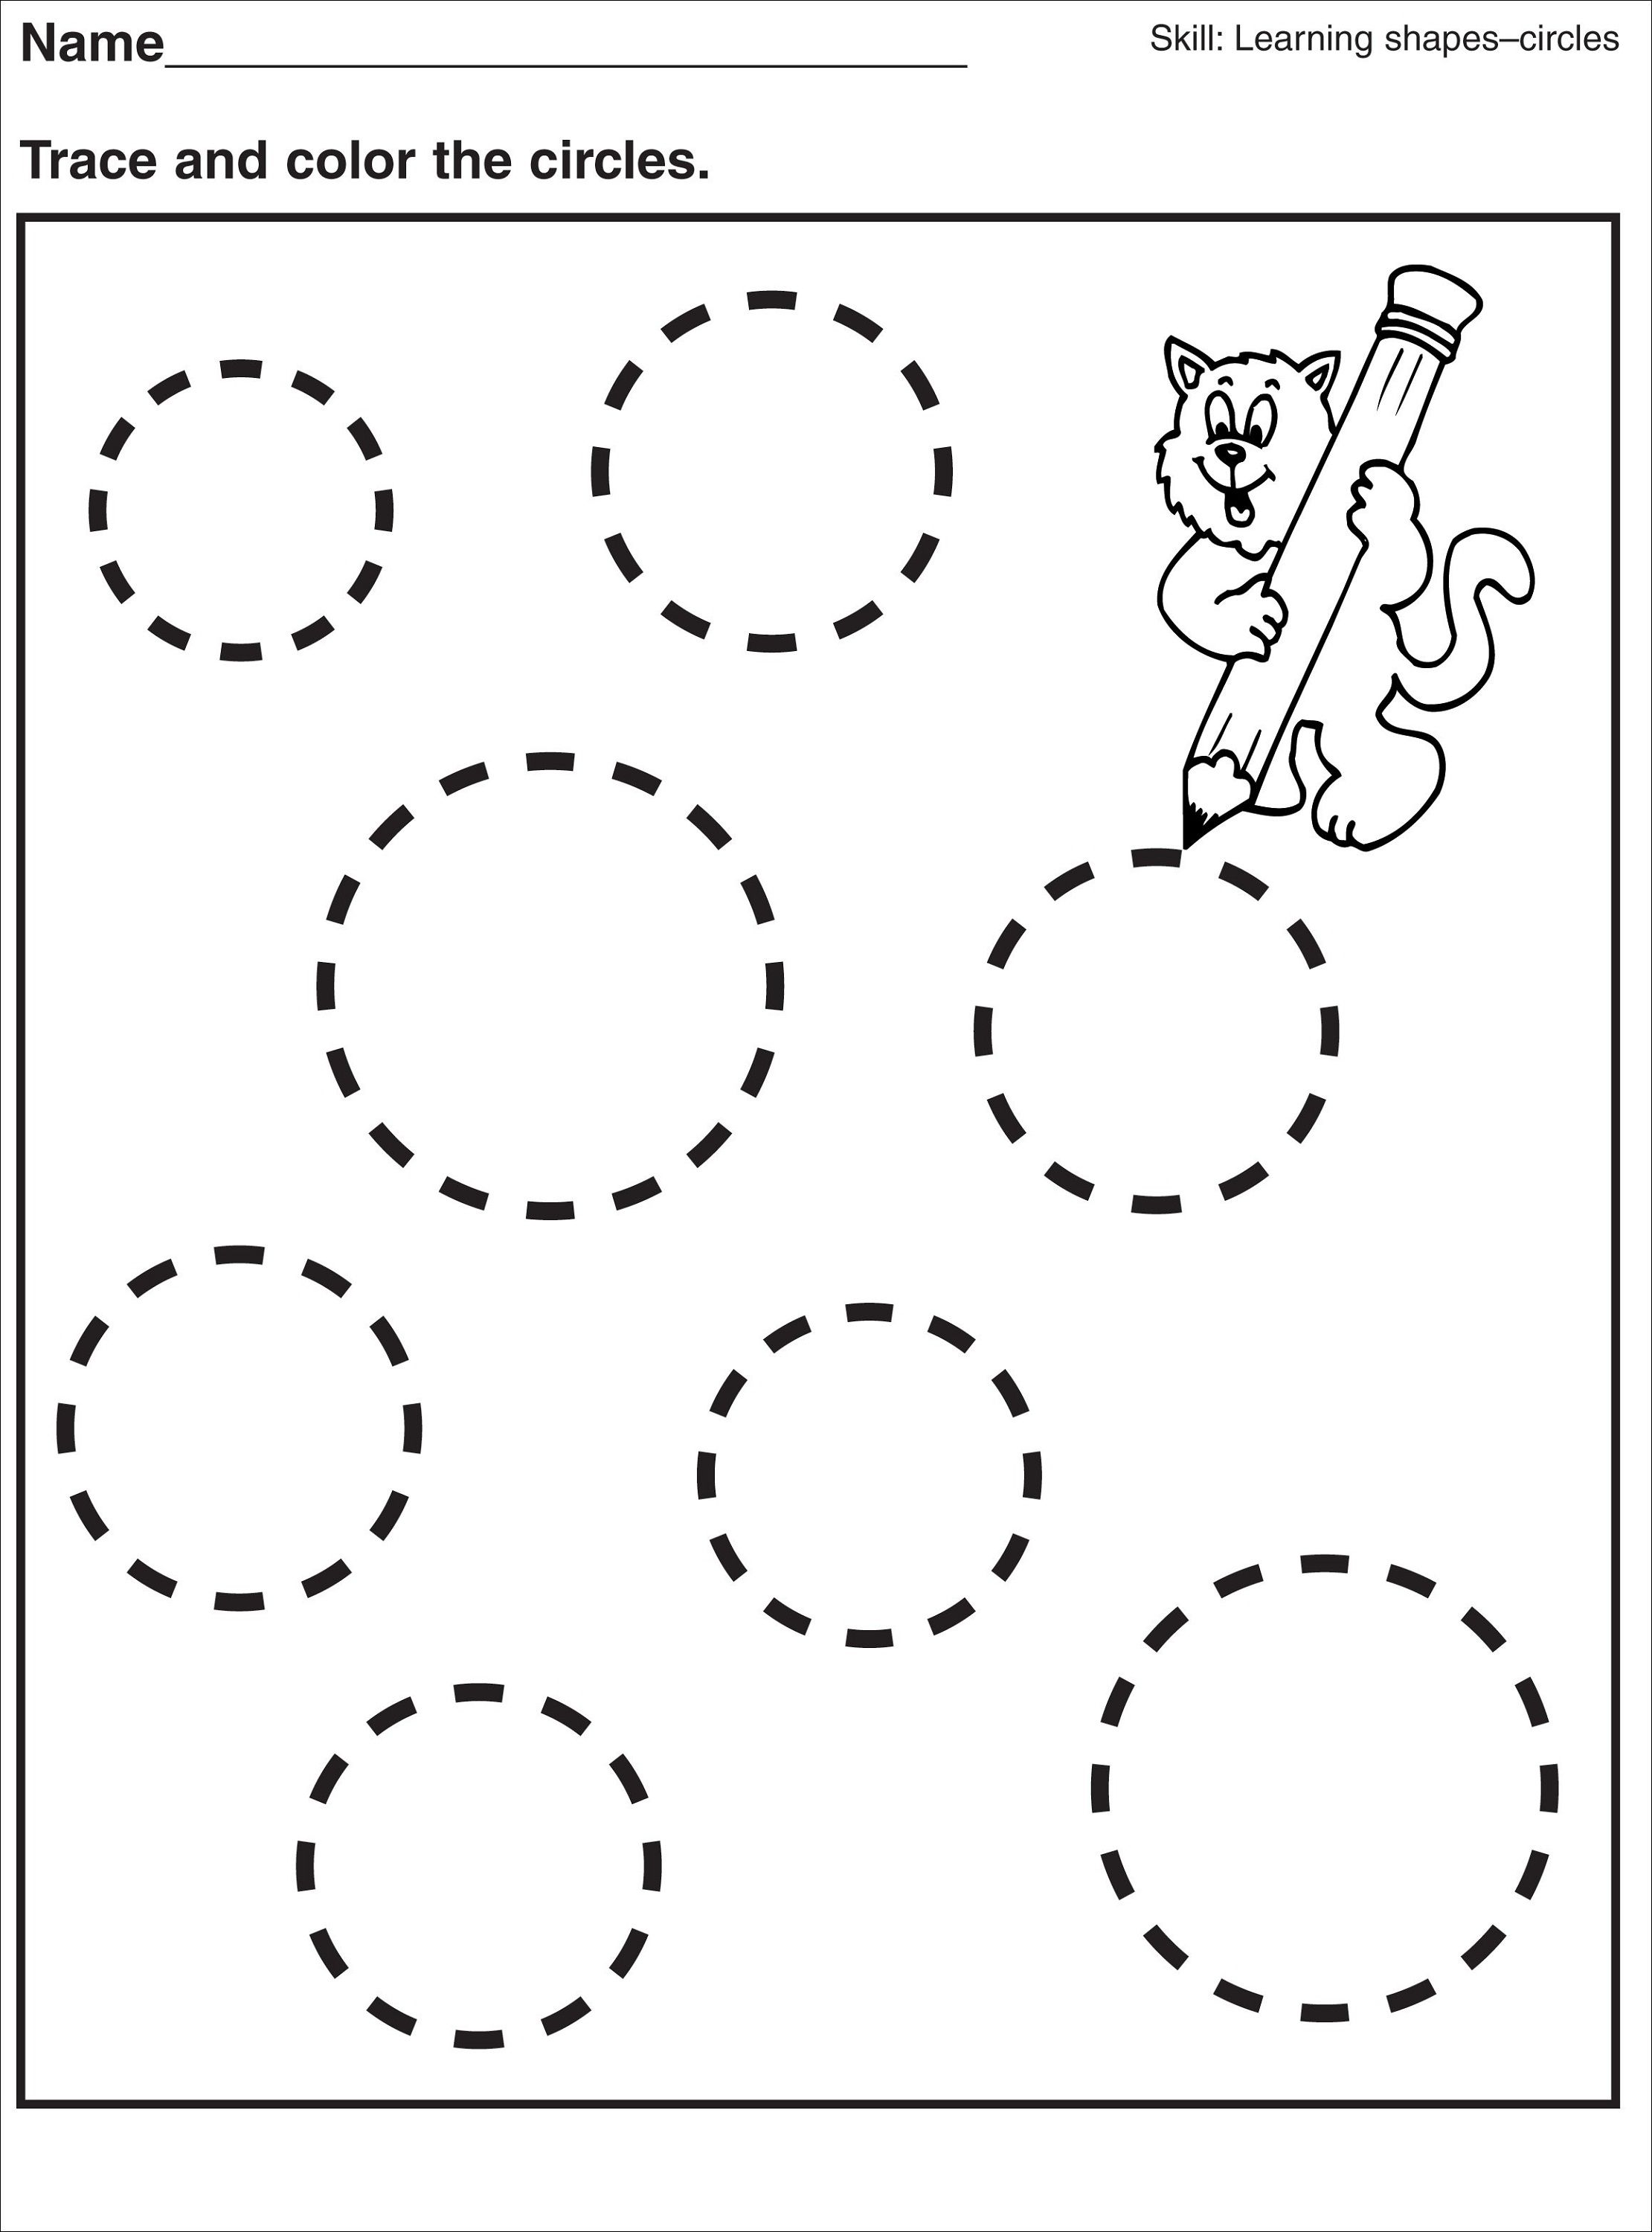 Tracing Pages for Preschool | Kids Worksheets Printable | Pinterest ...